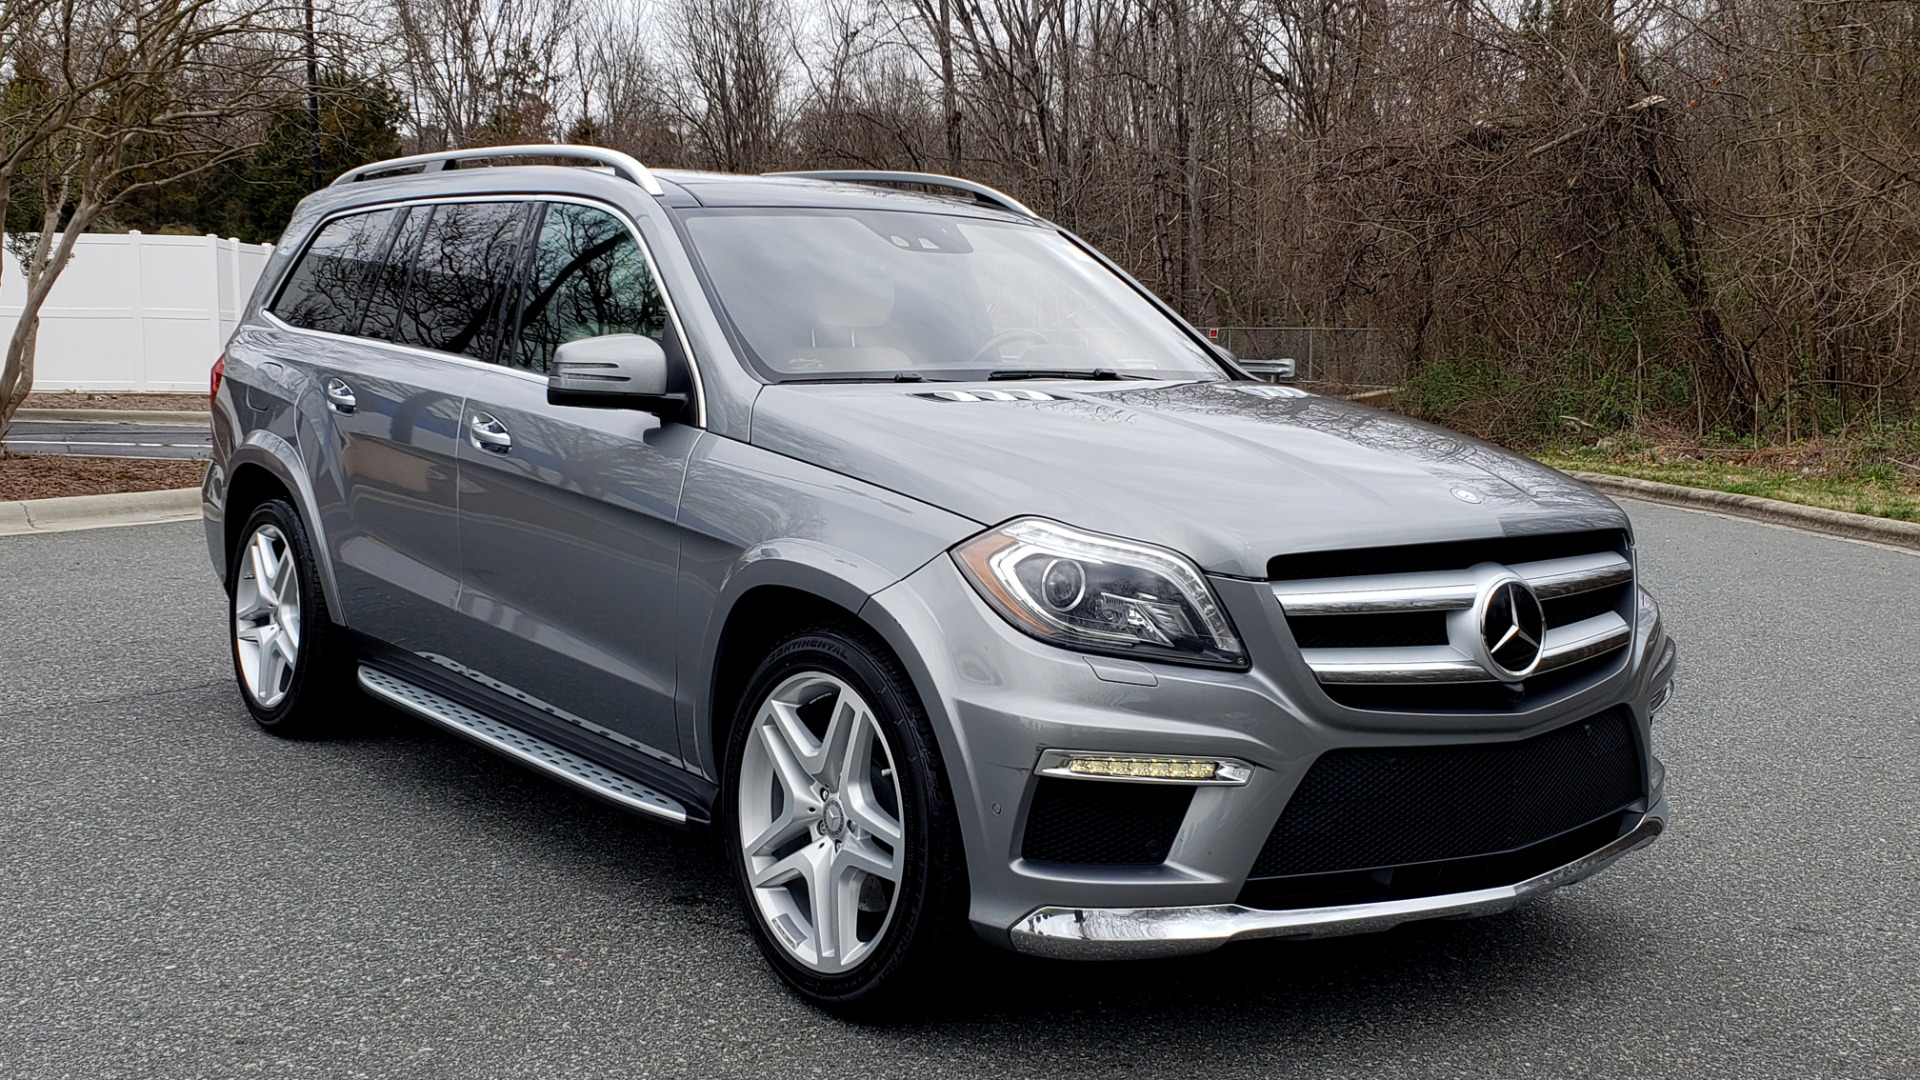 Used 2016 Mercedes-Benz GL 550 4MATIC / NAV / DRVR ASST / DUAL-ROOF / REARVIEW for sale Sold at Formula Imports in Charlotte NC 28227 4